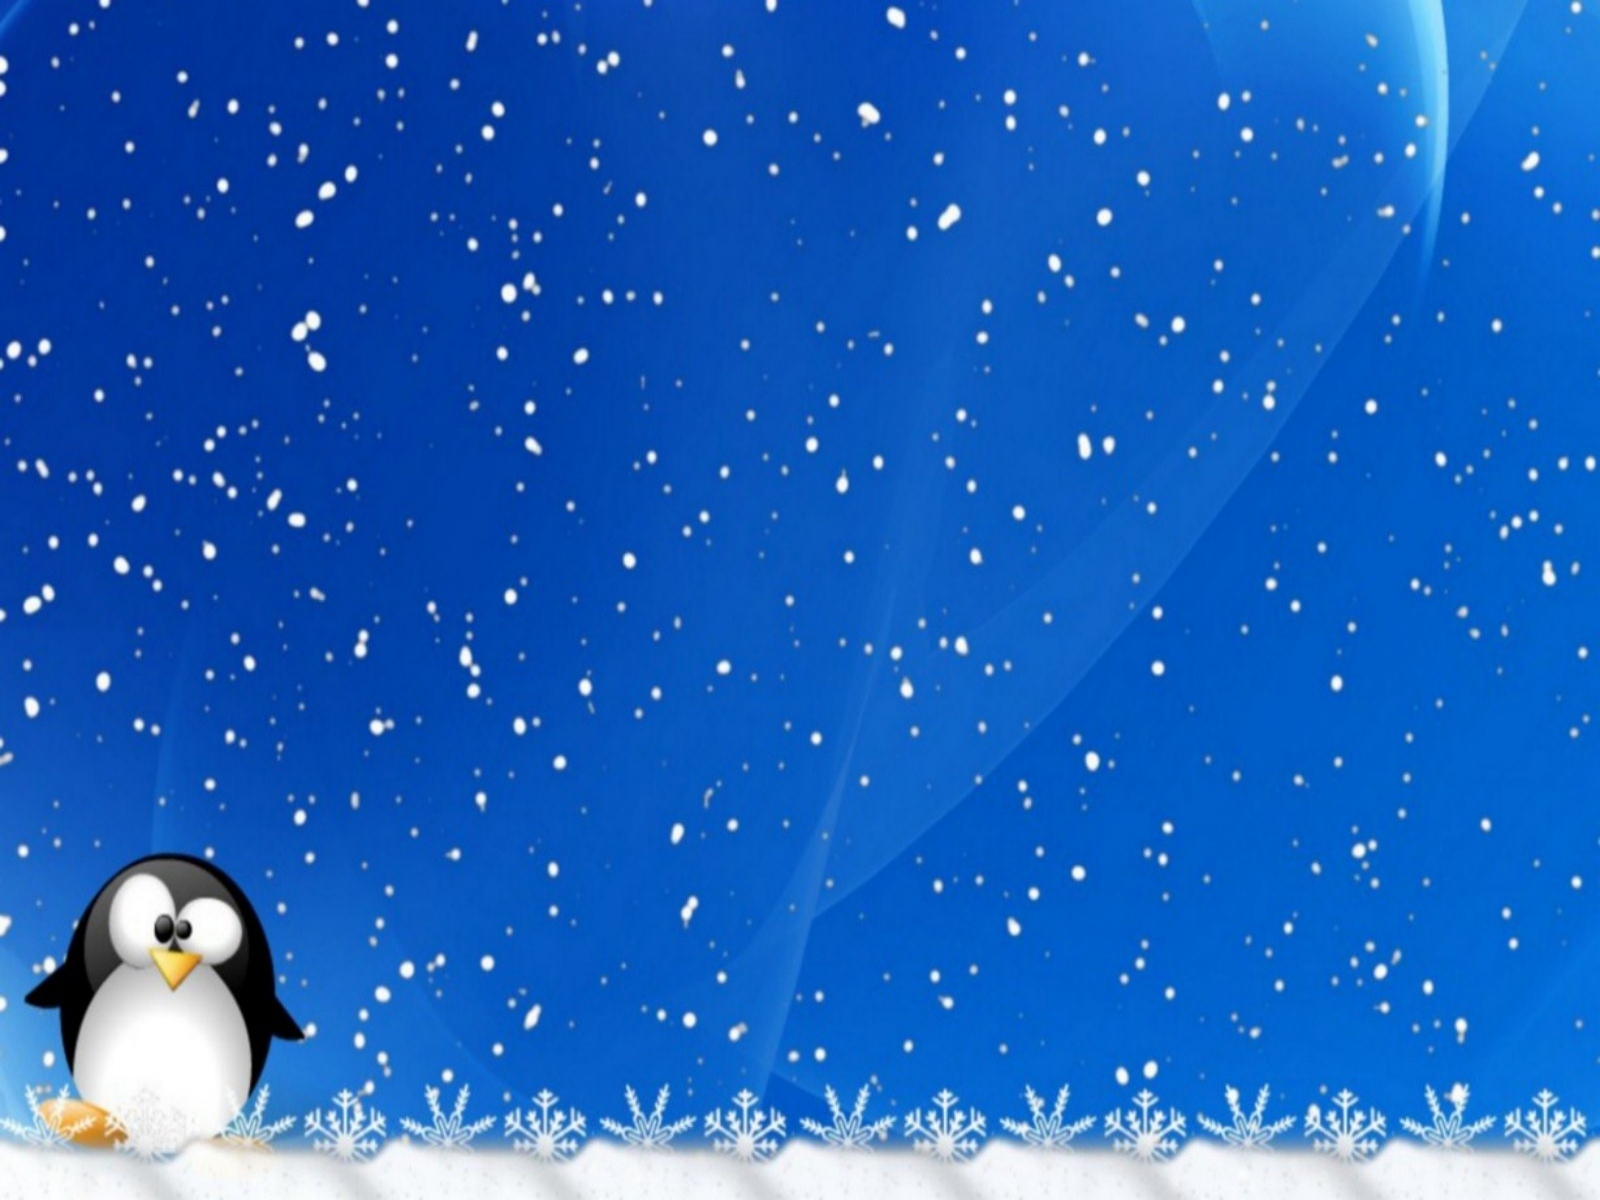 Winter images background wallpapersafari - Free christmas images for desktop wallpaper ...